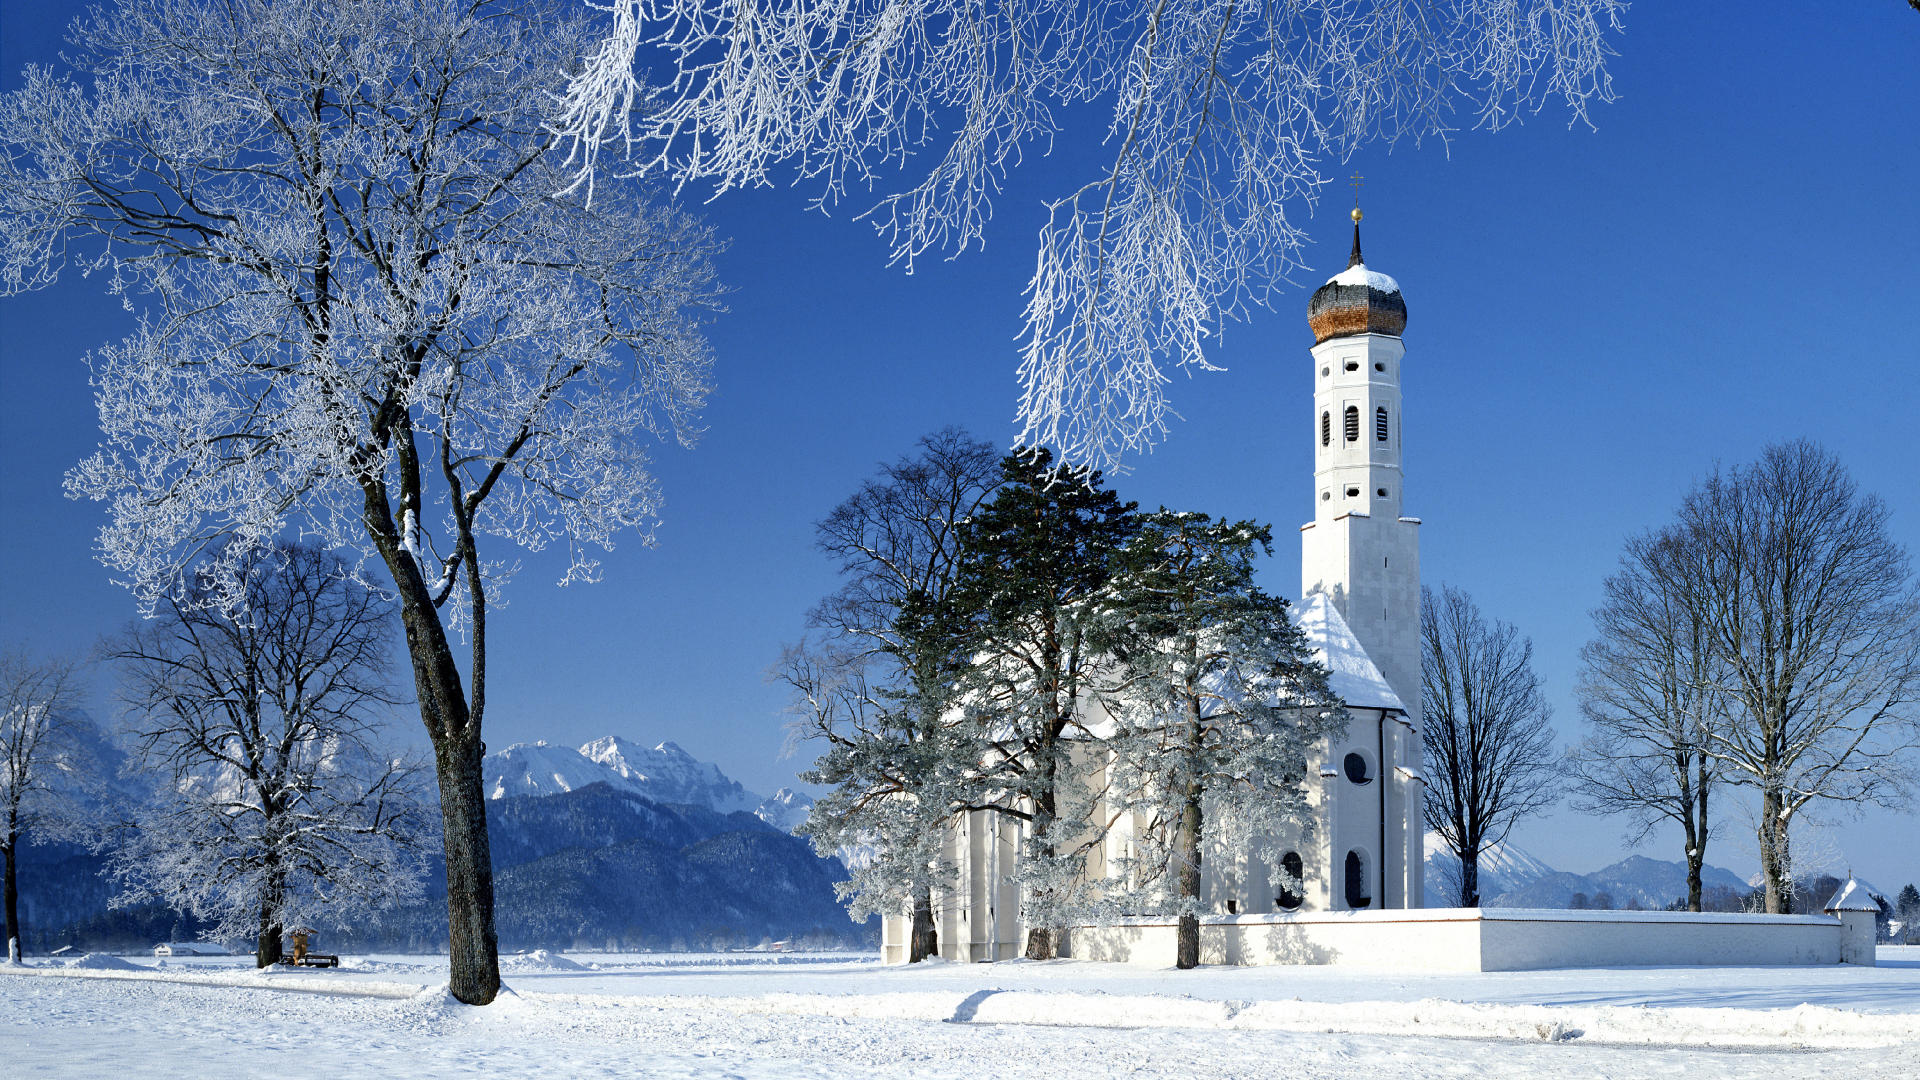 Winter Church wallpaper 1920x1080